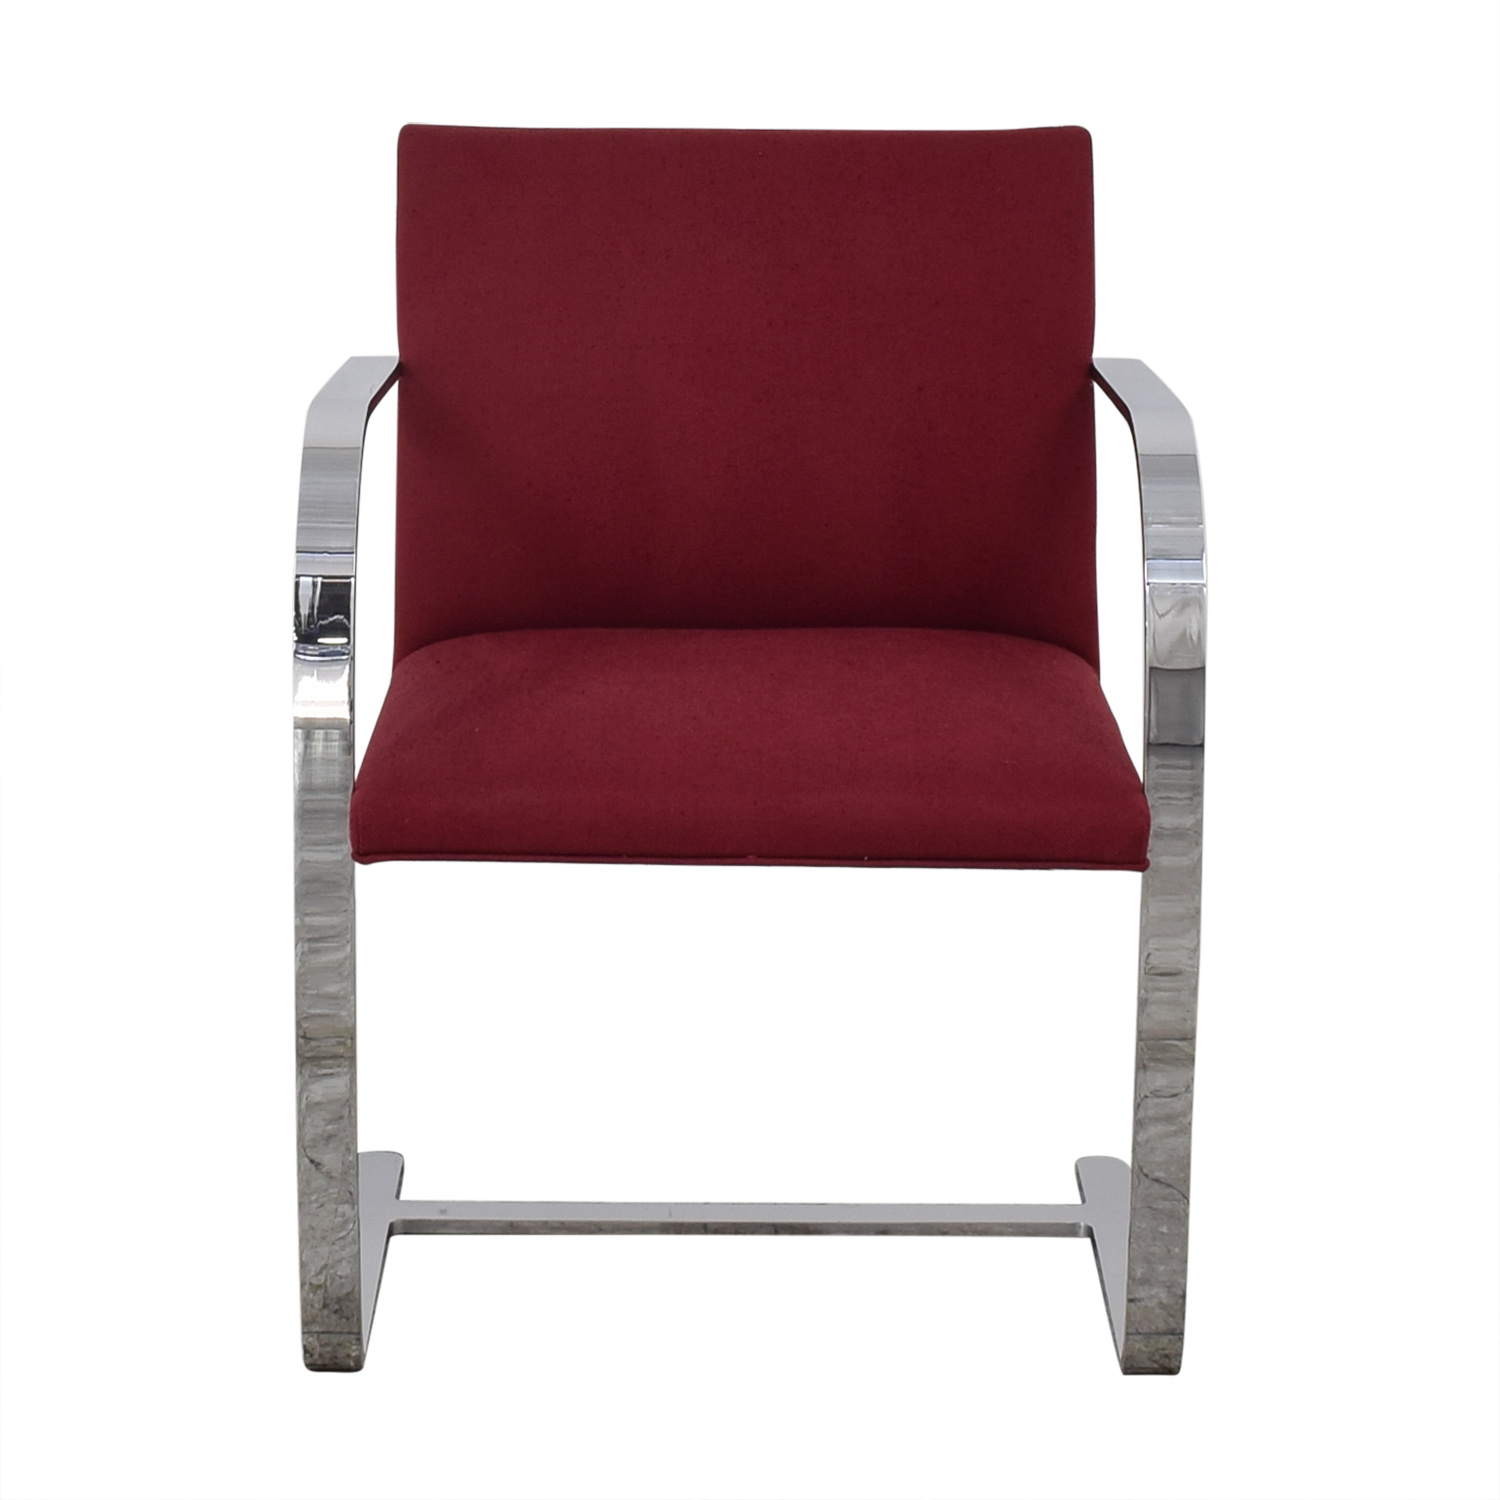 Knoll BRNO Chair with Flat Bar Frame / Accent Chairs